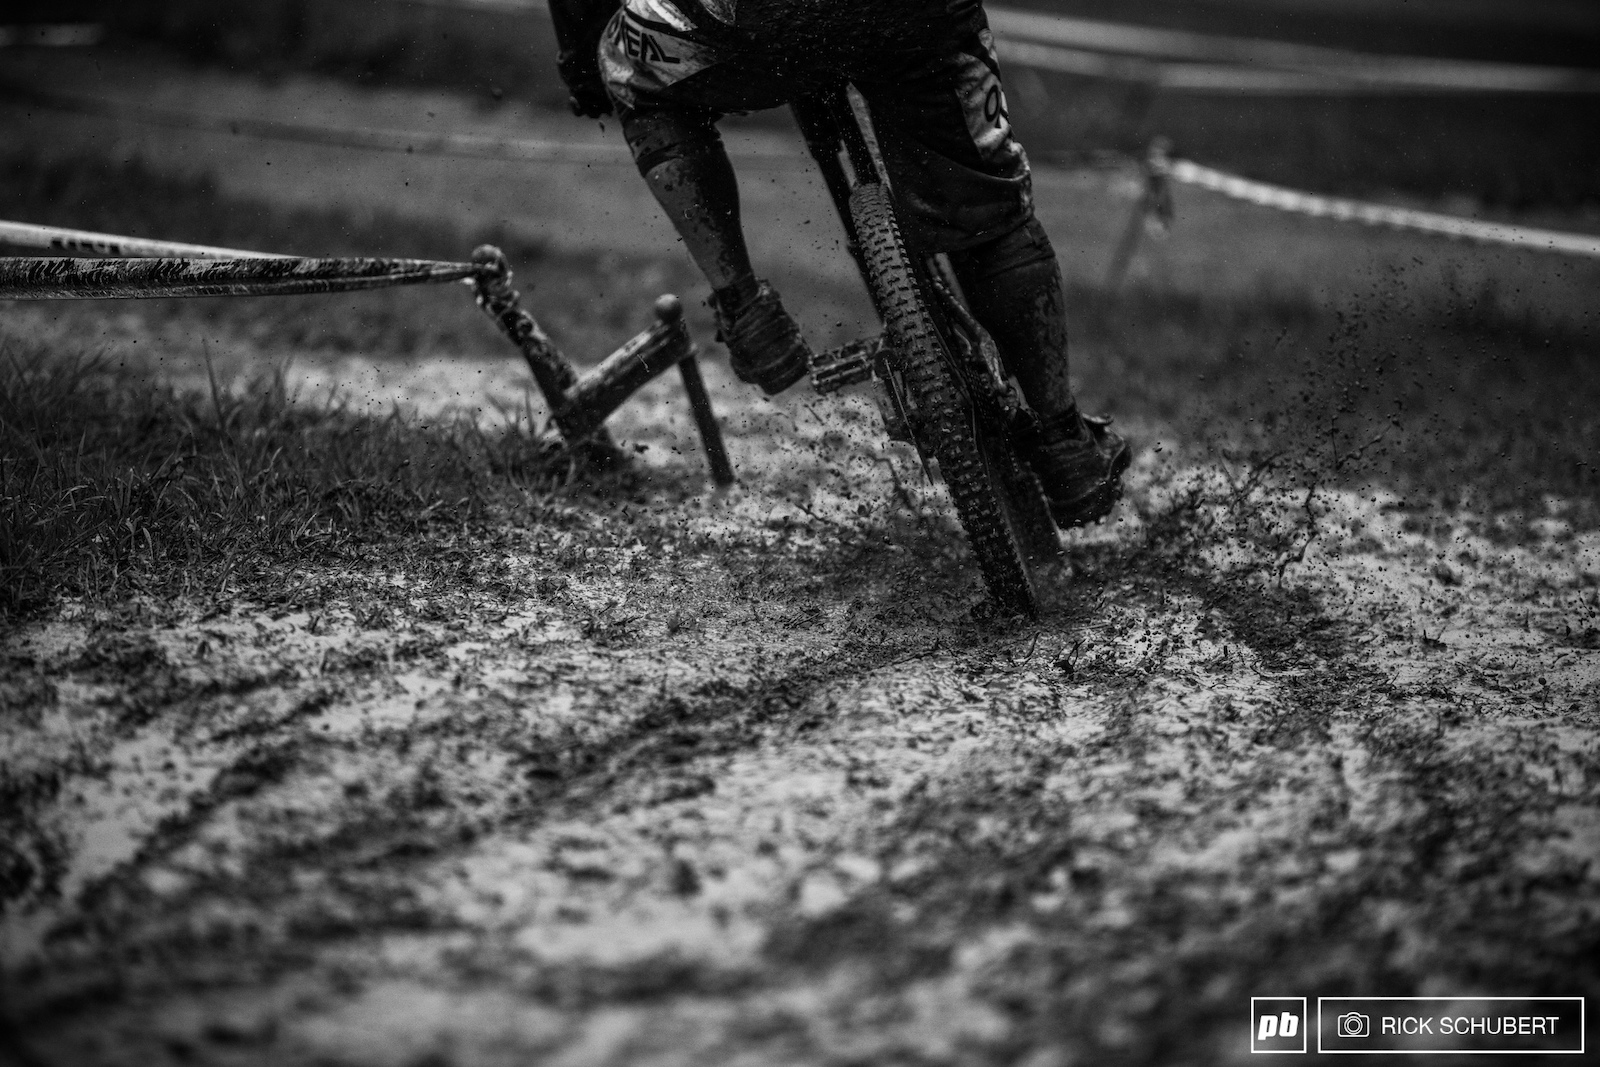 The rain kept it steady the whole day and caused some serious track conditions